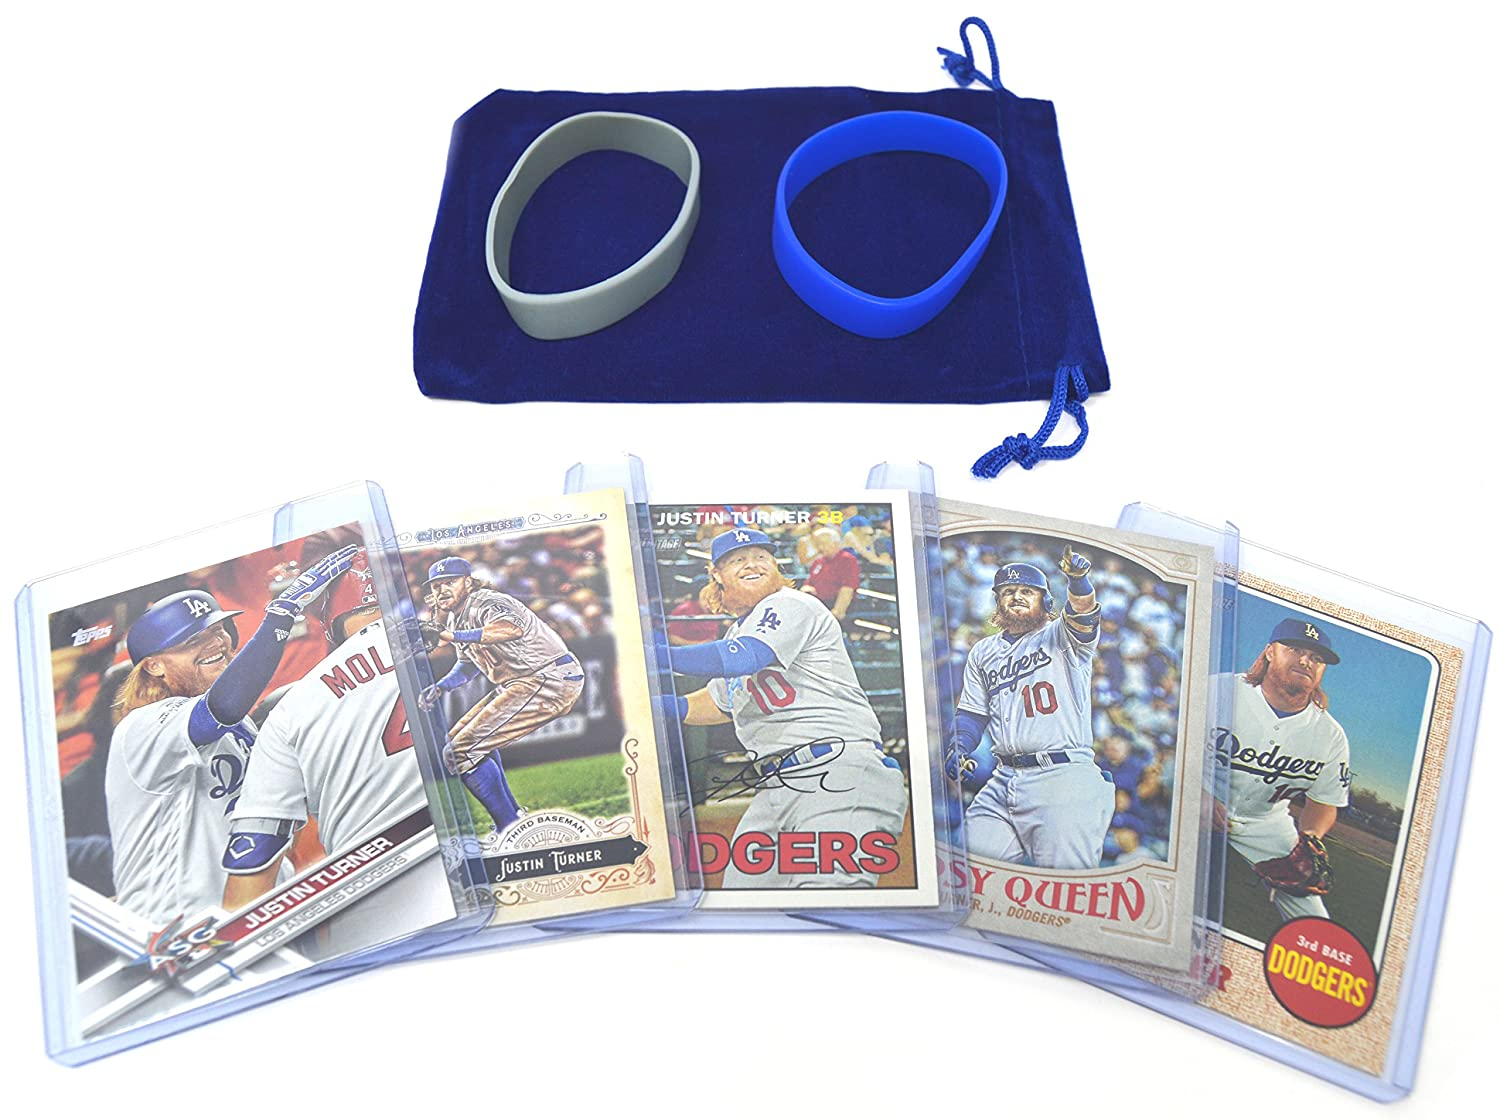 Justin Turner Baseball Cards Assorted (5) Gift Bundle - Los Angeles Dodgers Trading Cards # 10 Panini Bowman Topps